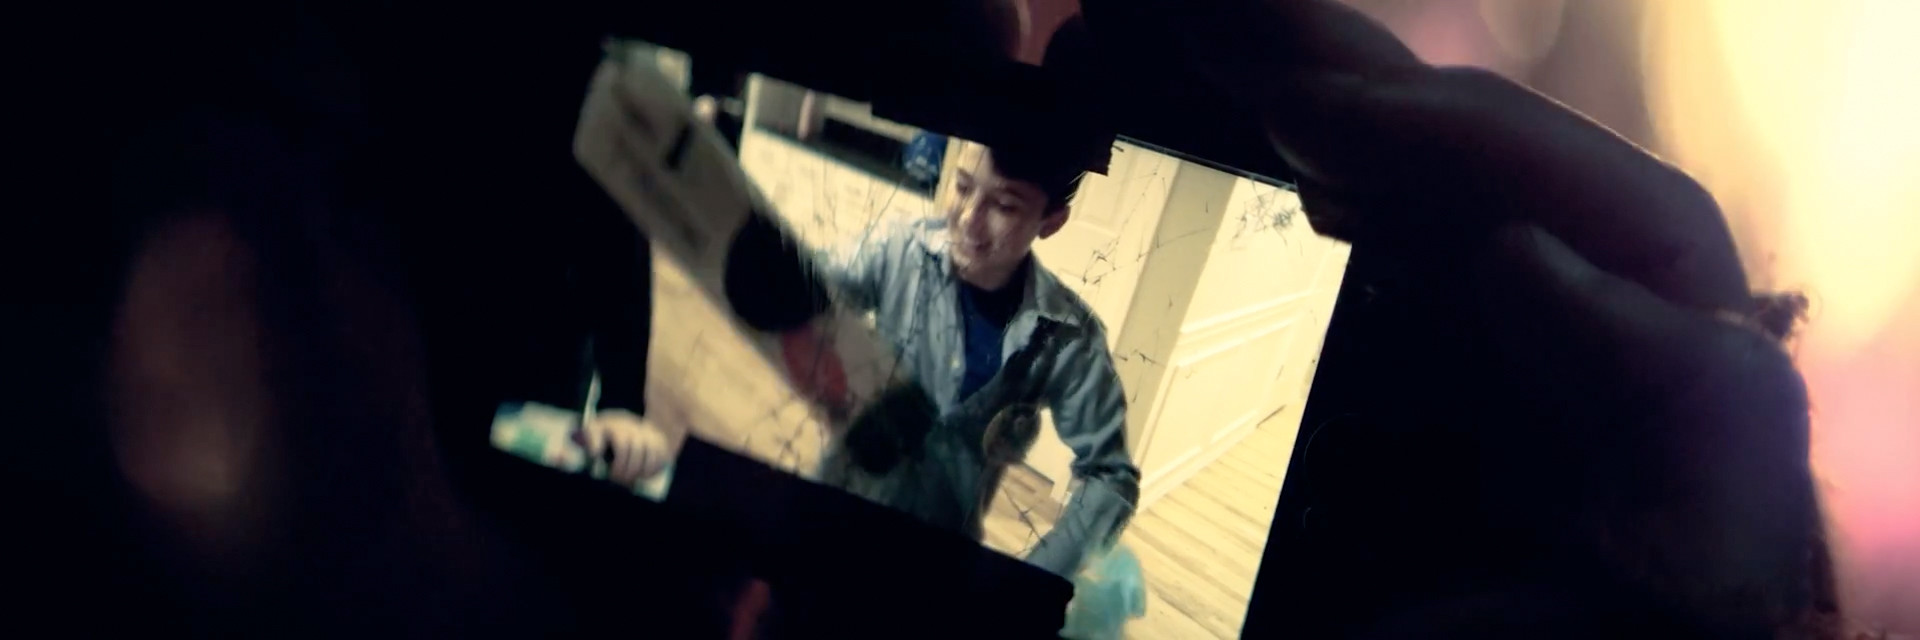 """Cracked iPhone for Devin Sinha's """"Coming Home"""" music video, directed by Sam Nuttman."""